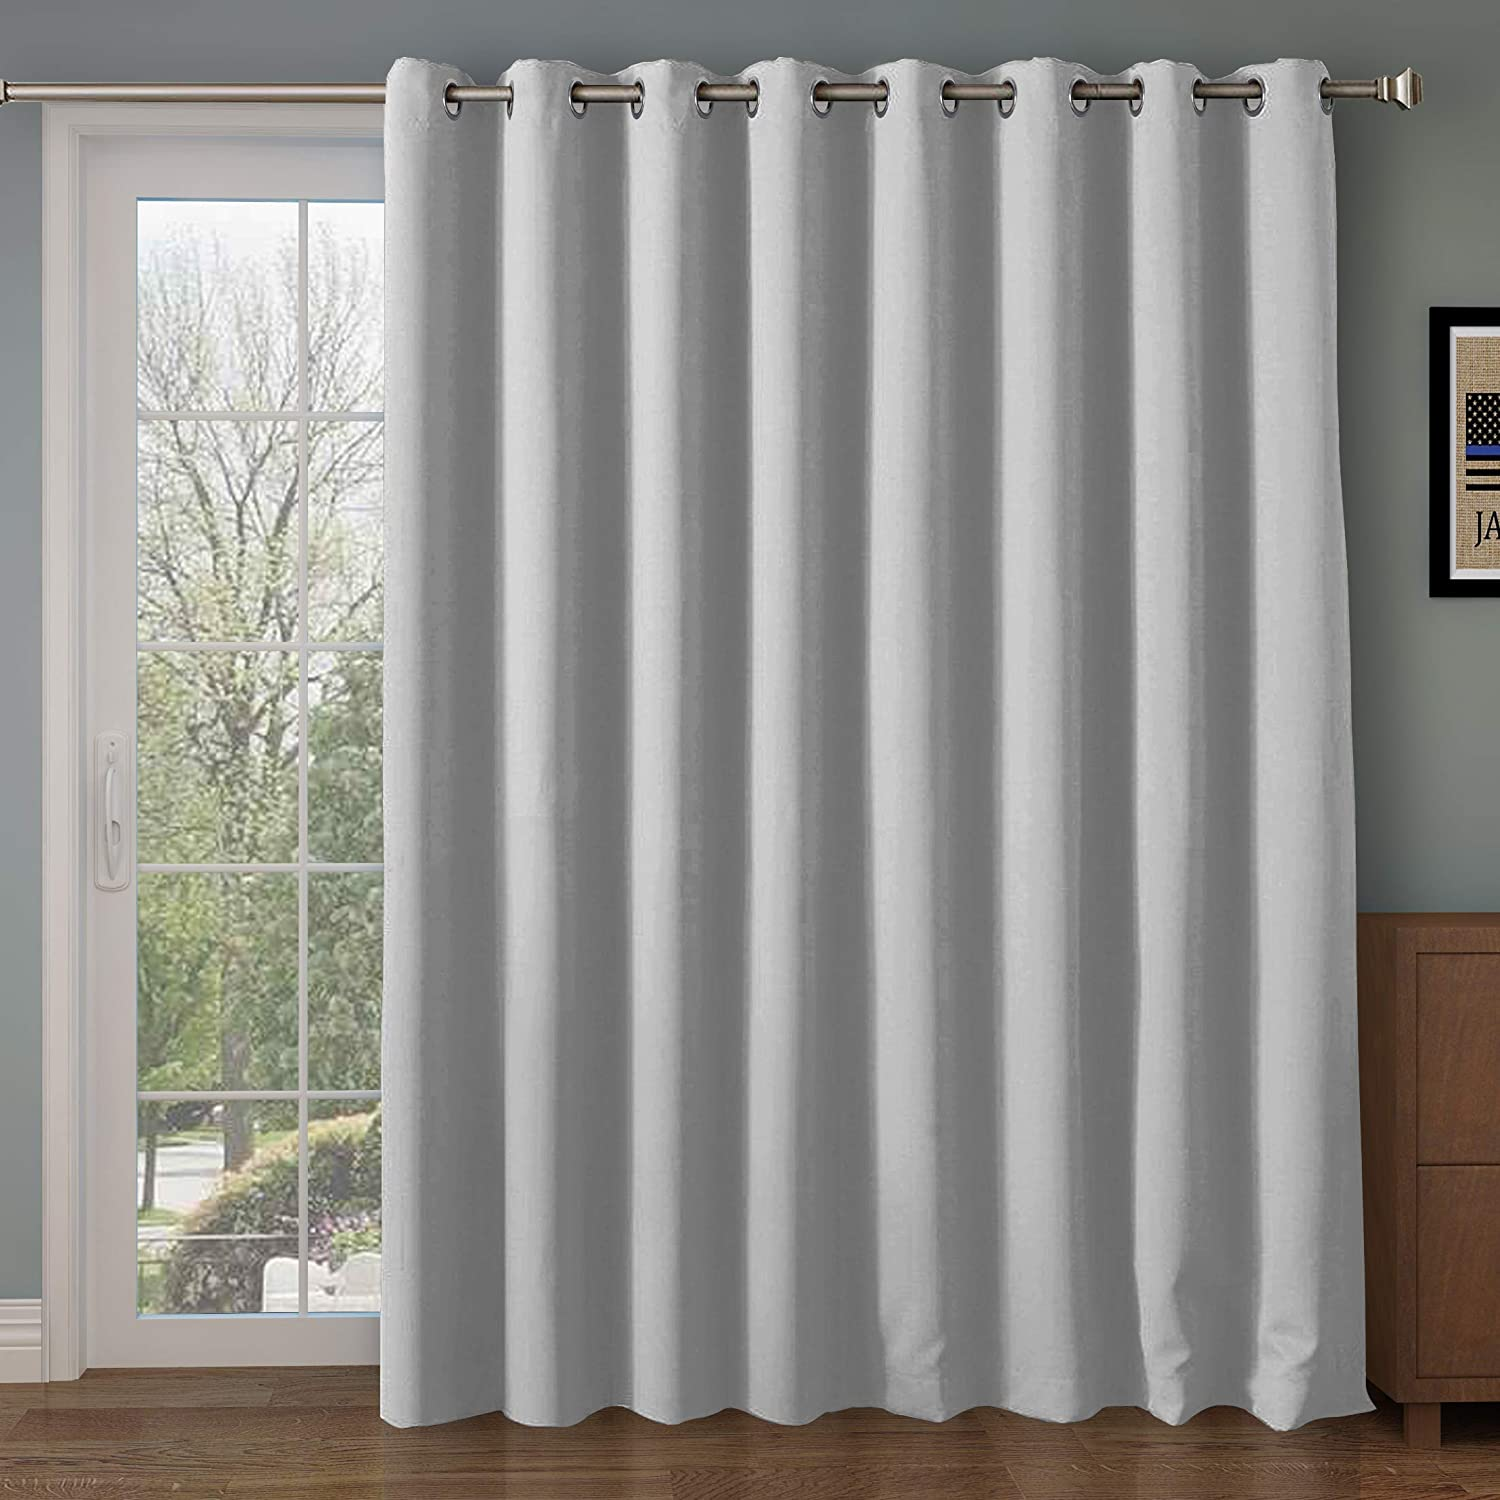 Amazoncom Wide Blackout Patio Door Curtain Panelsliding Door